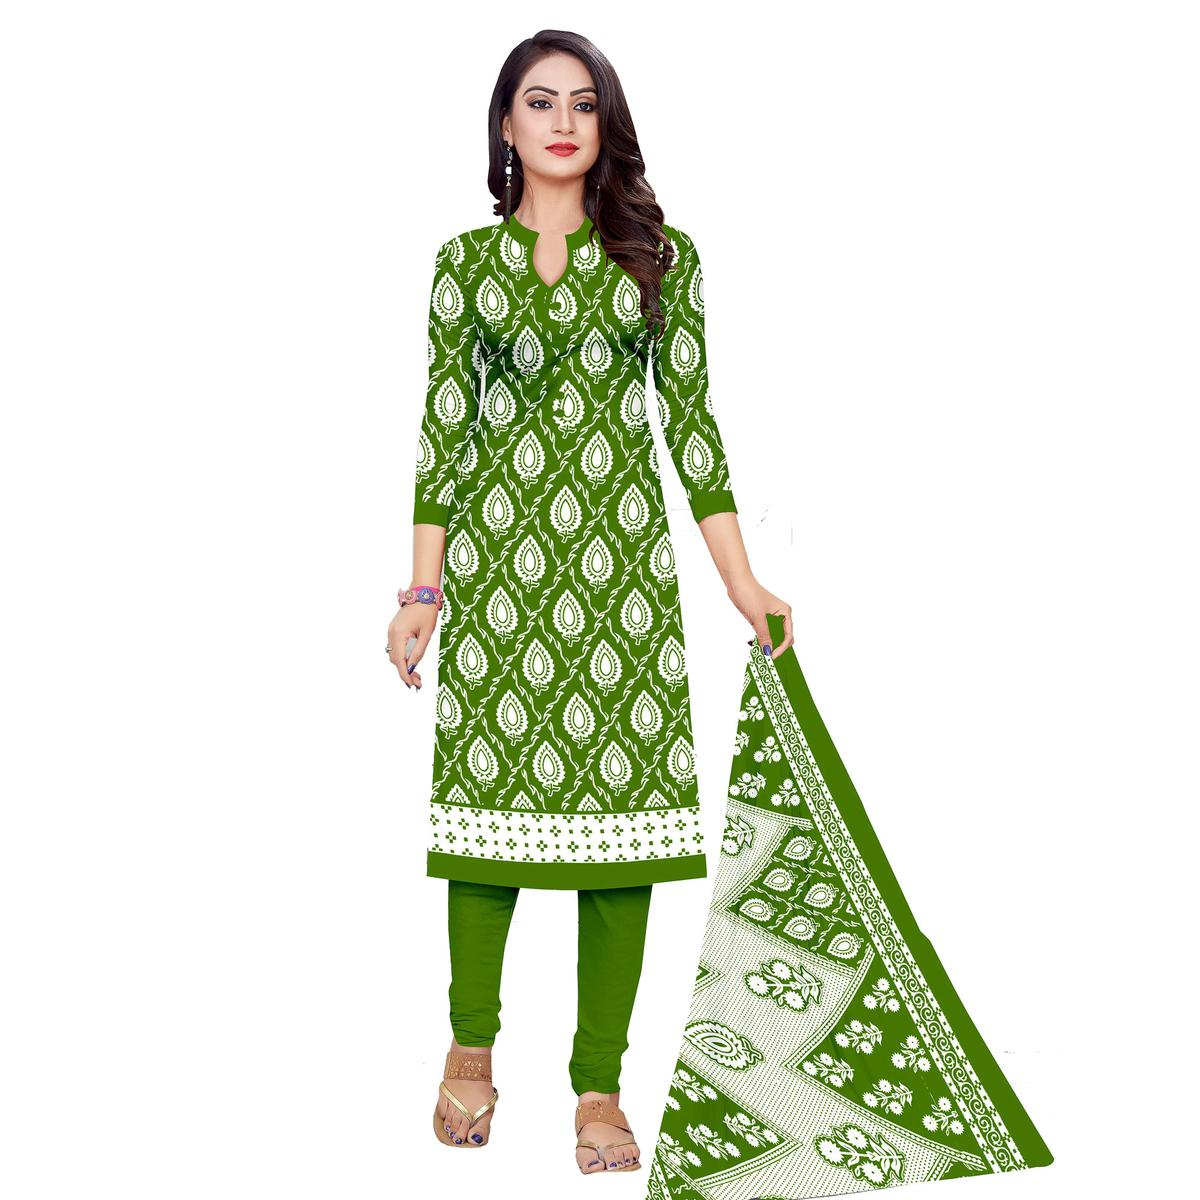 Exceptional Green Colored Casual Wear Printed Cotton Dress Material